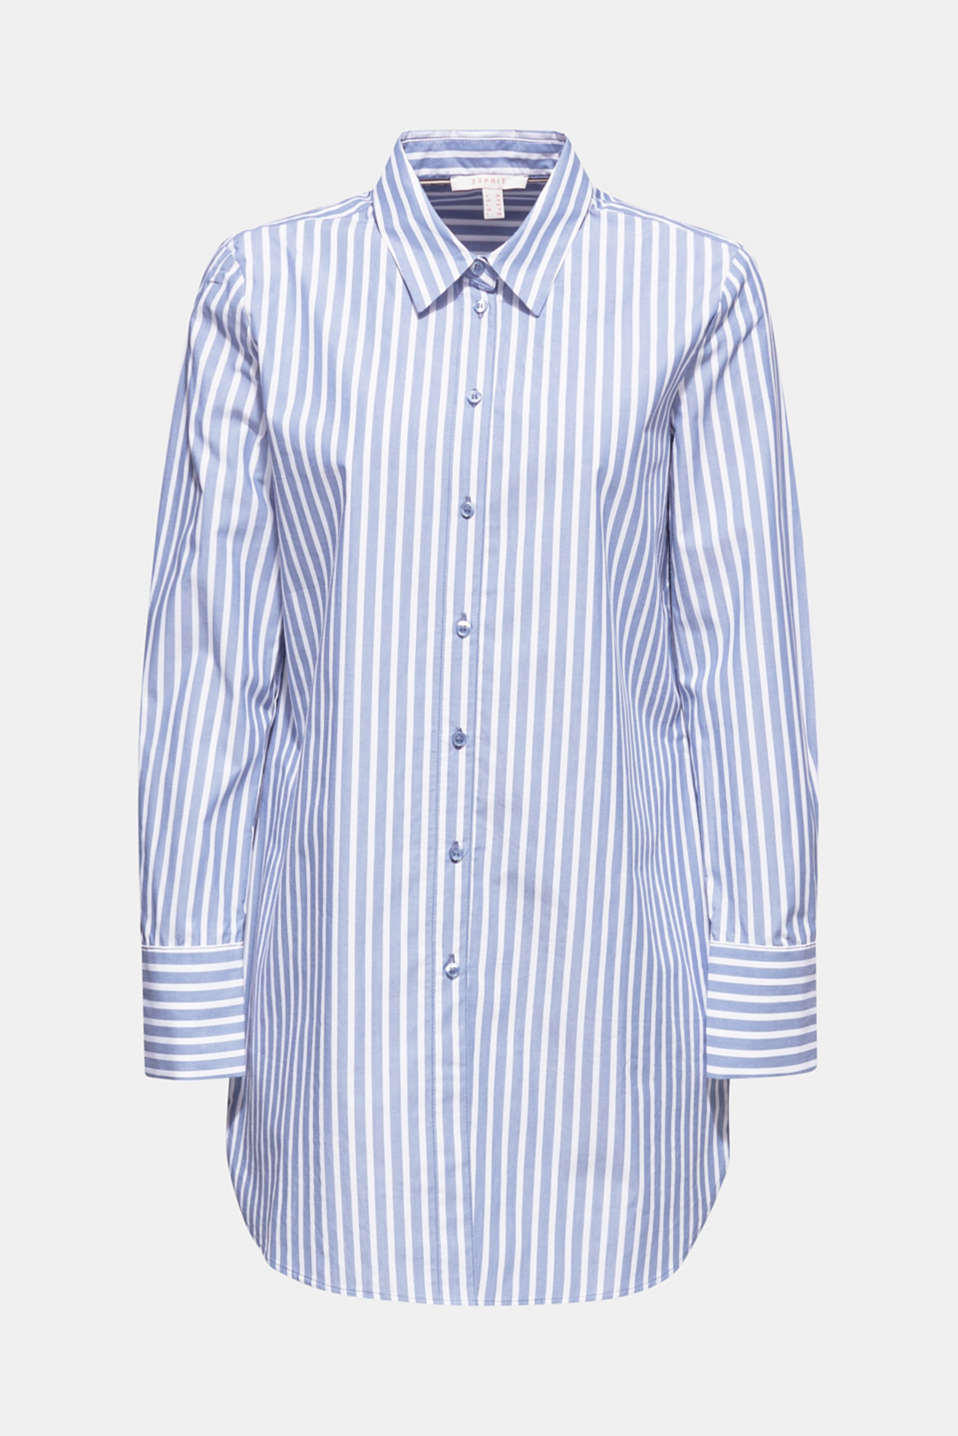 Long blouse with stripes, 100% cotton, BLUE, detail image number 7